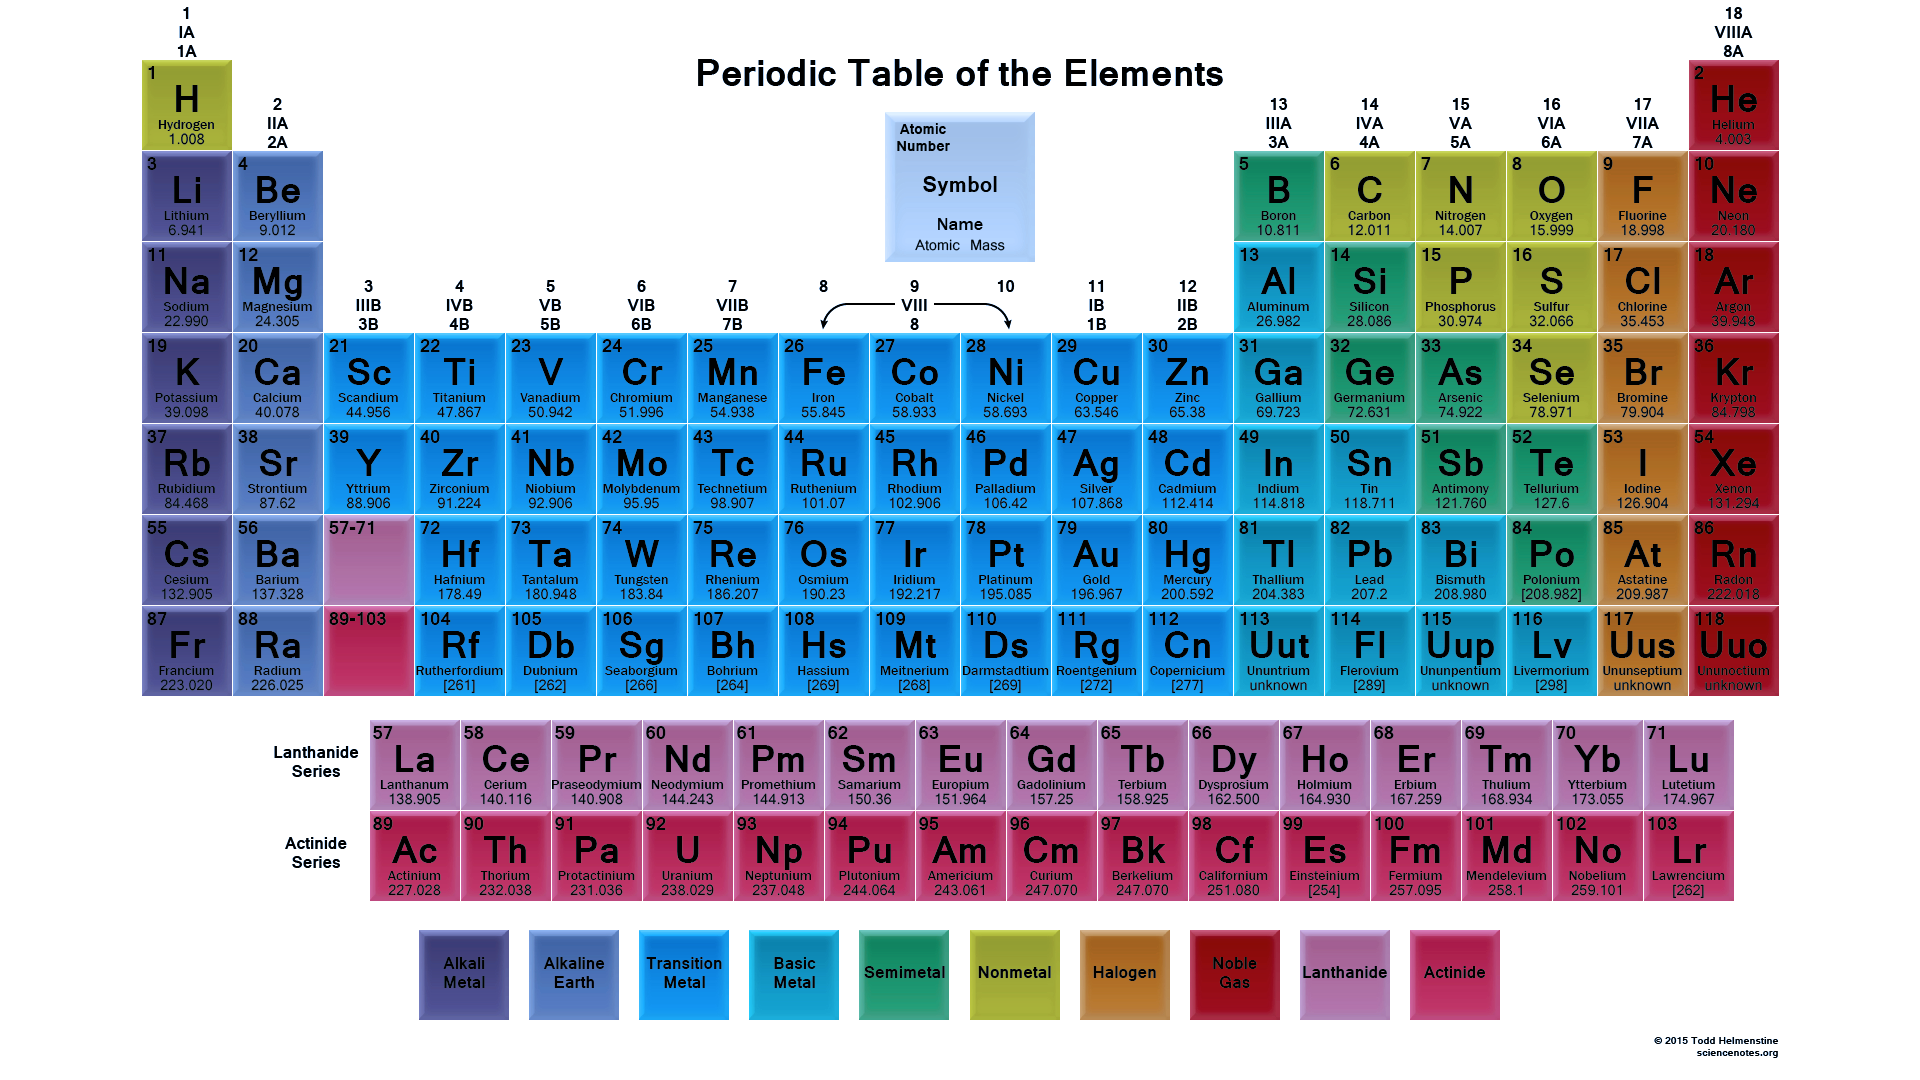 the periodic table The periodic table of the chemical elements displays the organizing principles of matter the table is a tabular depiction of the chemical elements and their characteristics.